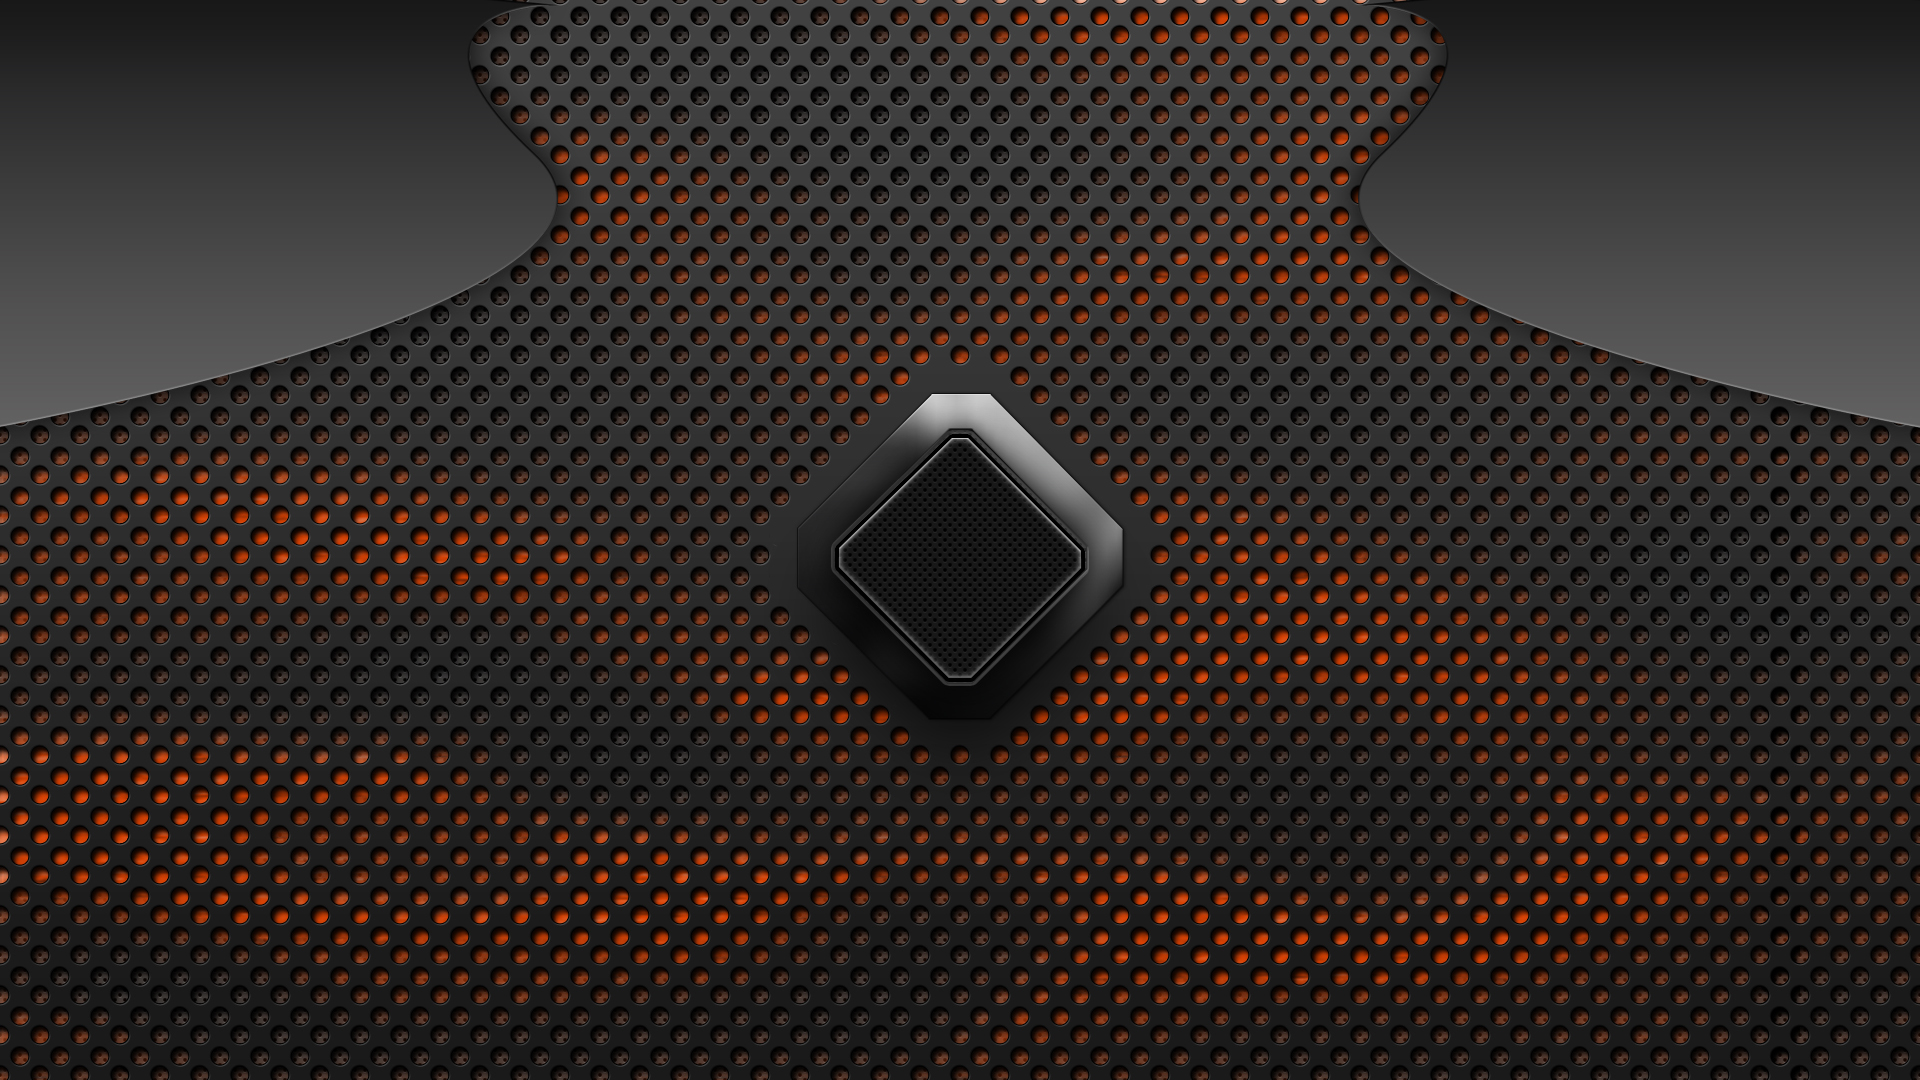 carbon fiber wallpapers hd | page 2 of 3 | wallpaper.wiki